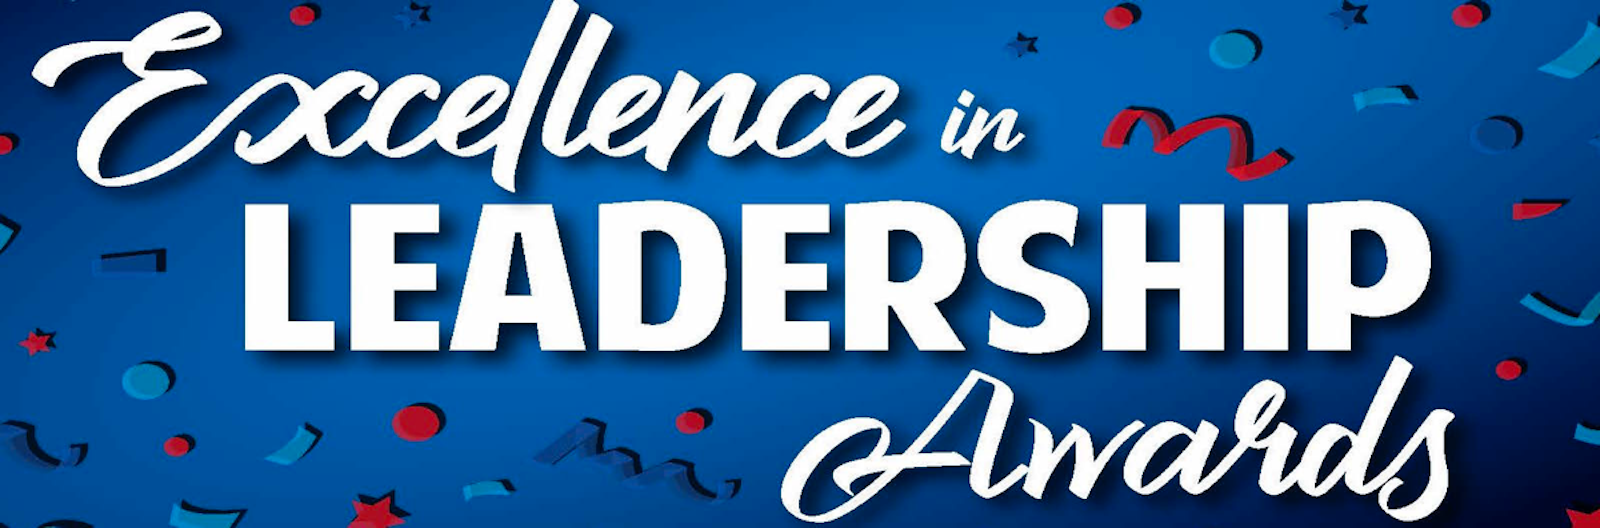 Do you know a DePaul student or organization who makes a difference in the DePaul community? Nominate them on OrgSync​ for the Office of Student Involvement's Excellence in Leadership Award by Wedneday,March 27!